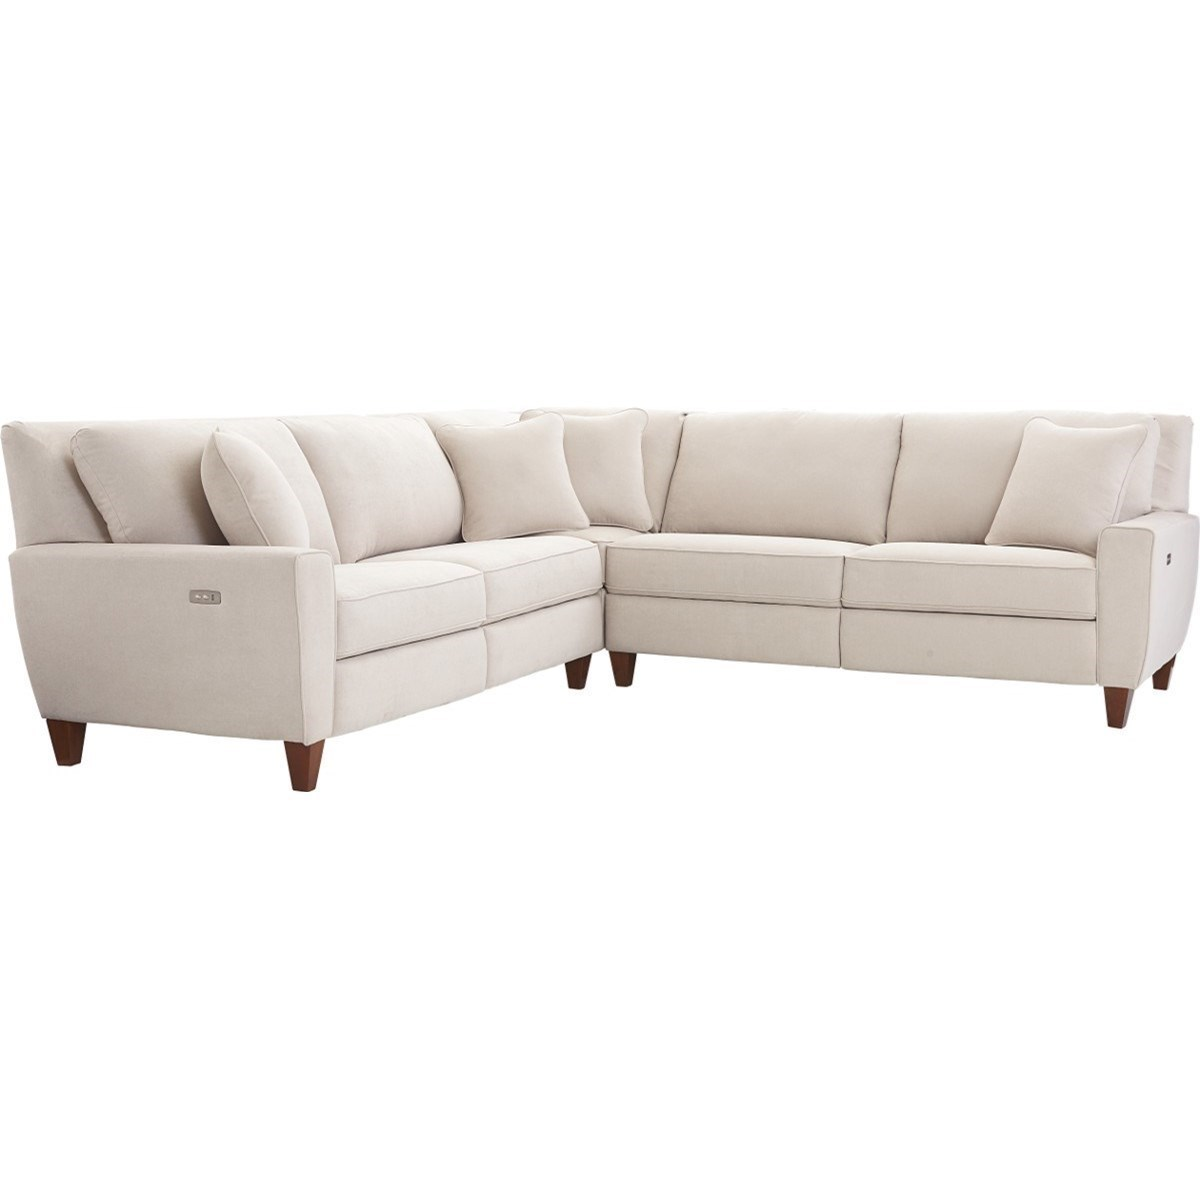 Bon La Z Boy Edie Three Piece Power Reclining Sectional Sofa With Two Reclining  Chairs